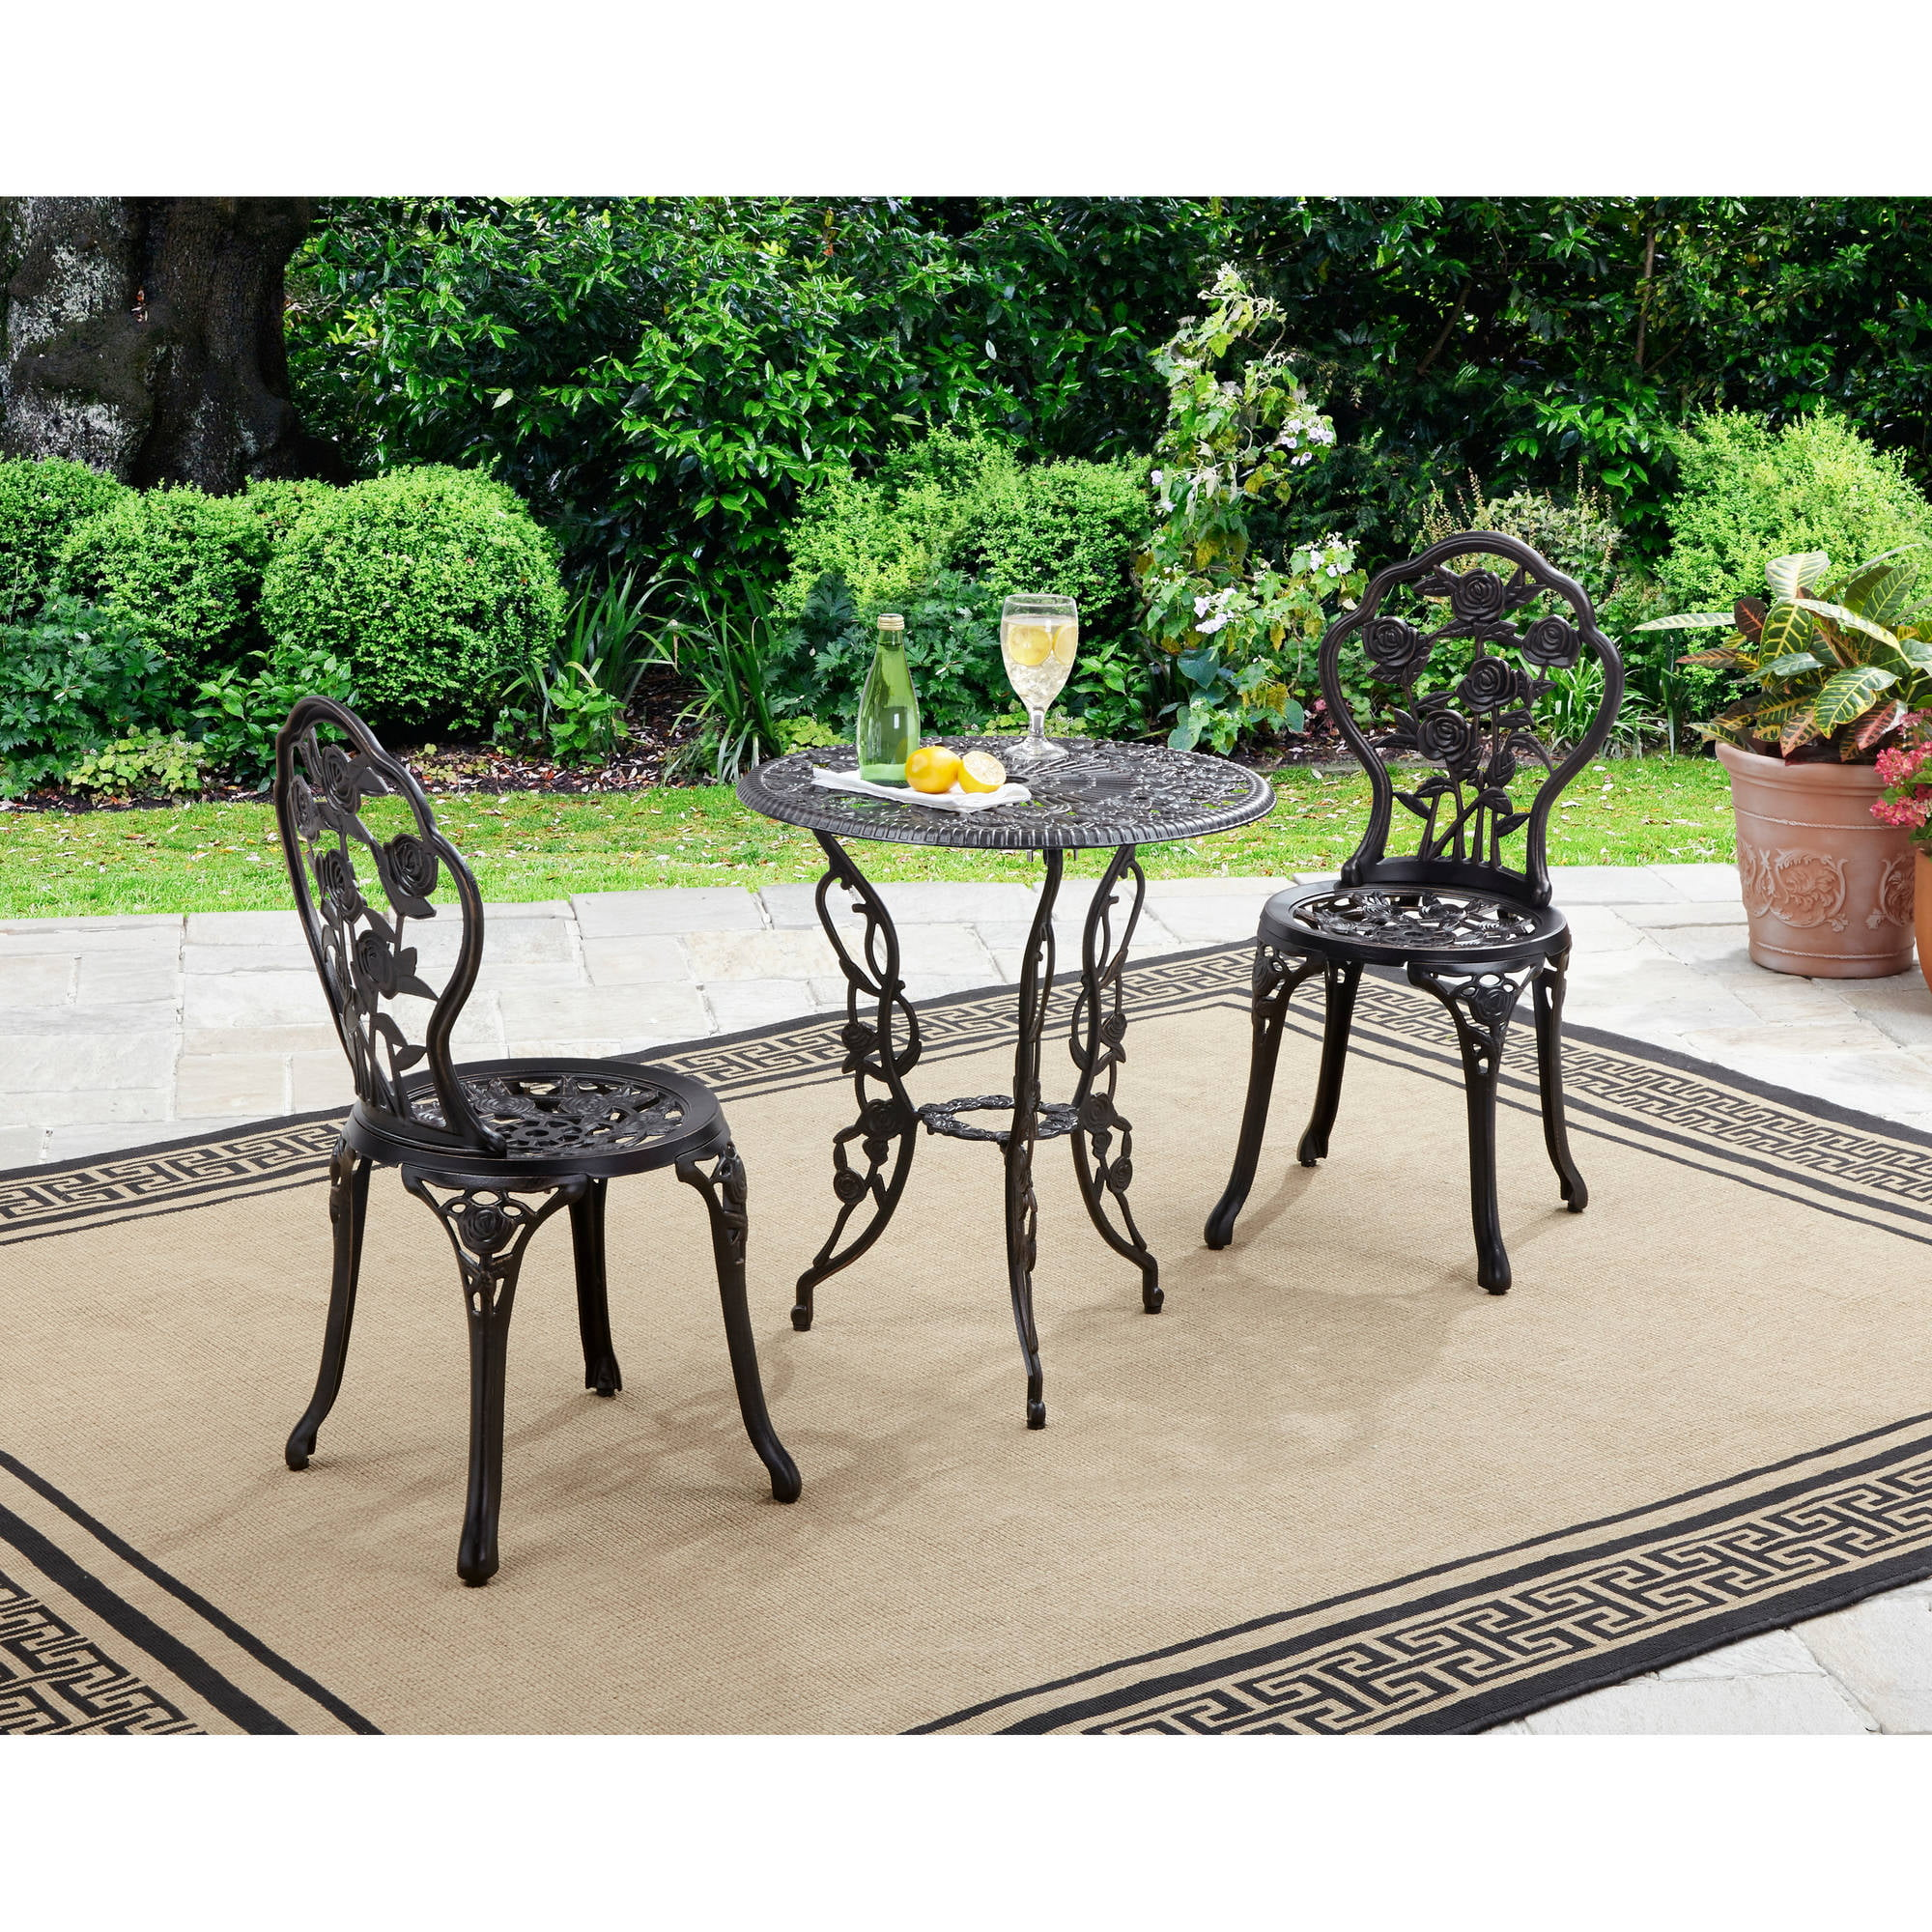 better homes and gardens rose 3 piece bistro set walmartcom - Garden Furniture 3 Piece